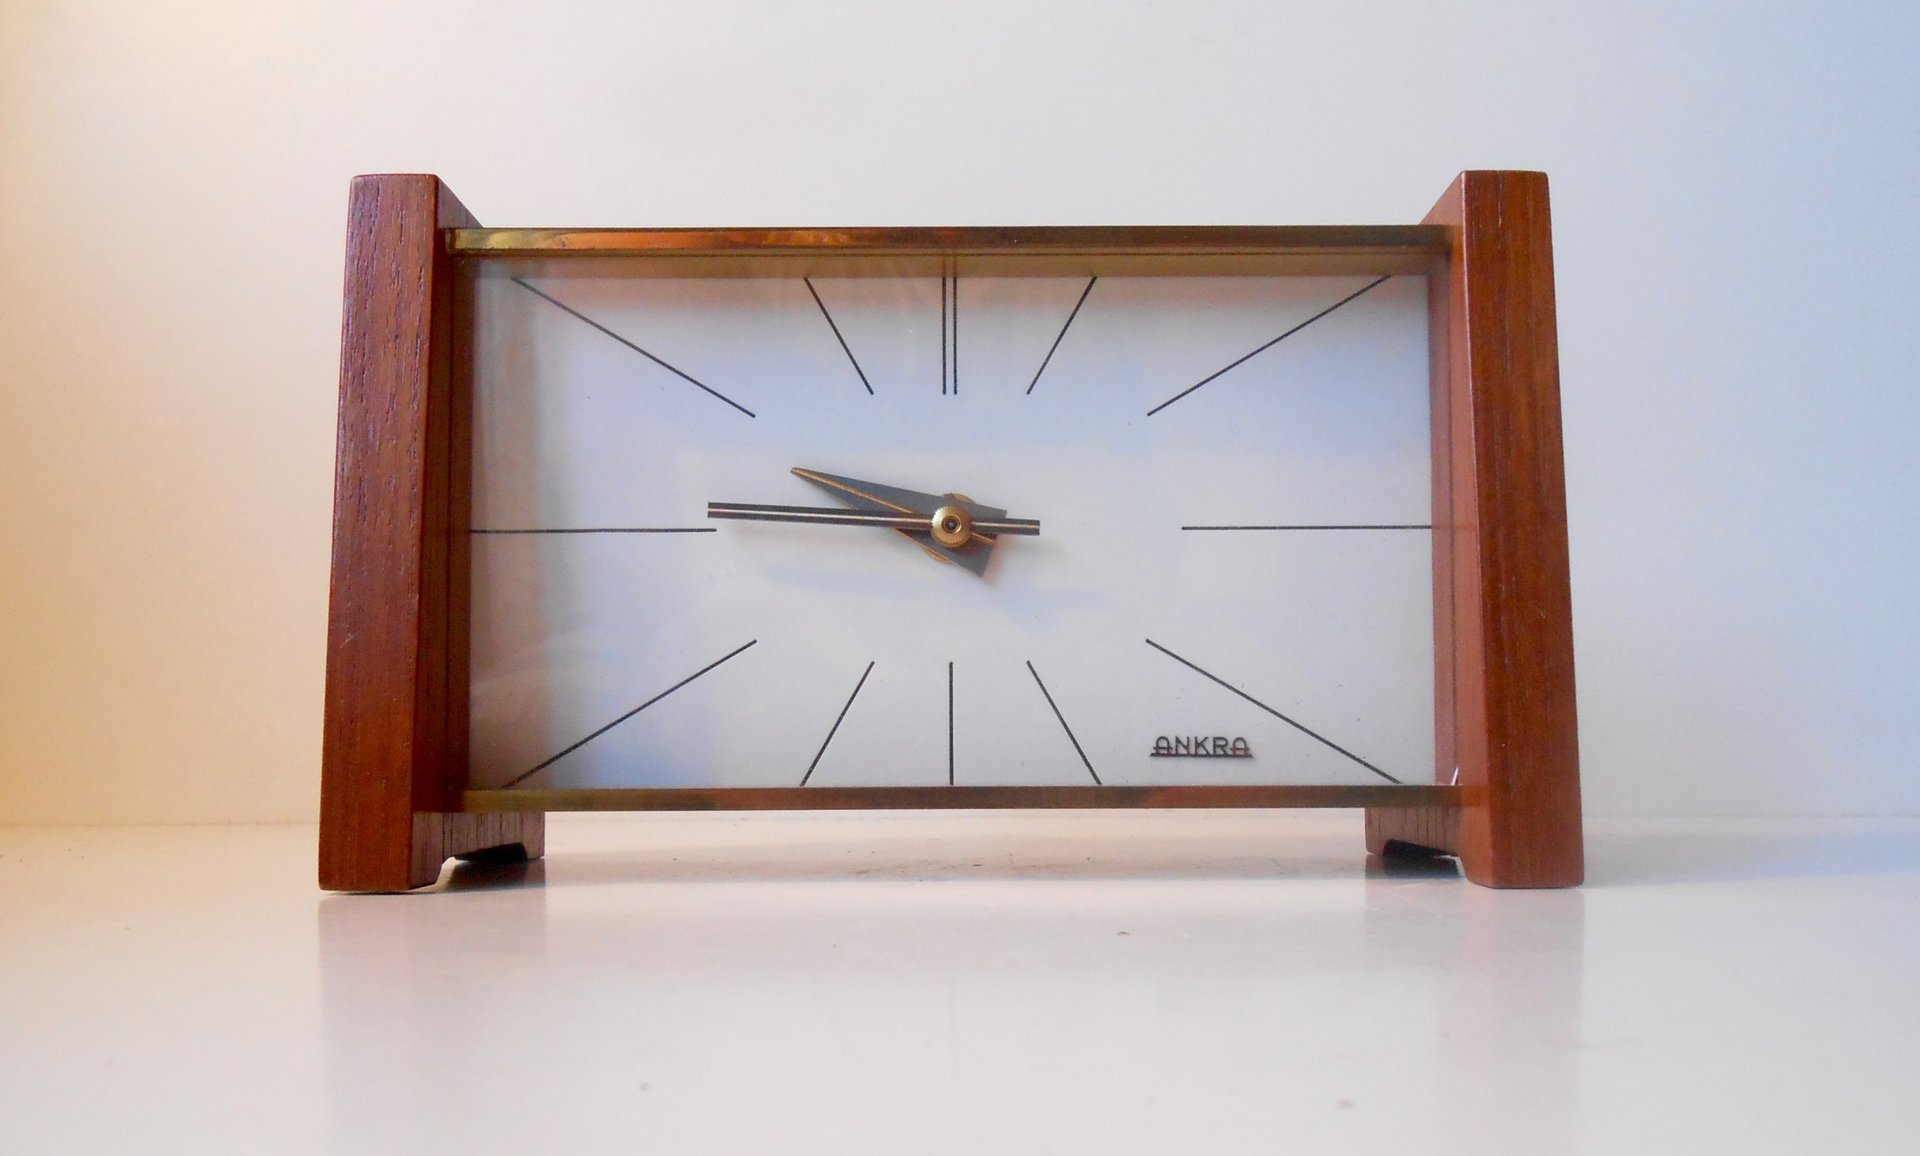 Midcentury Modern Table Clock From Ankra 8 Price: $54900 Regular Price:  $58000